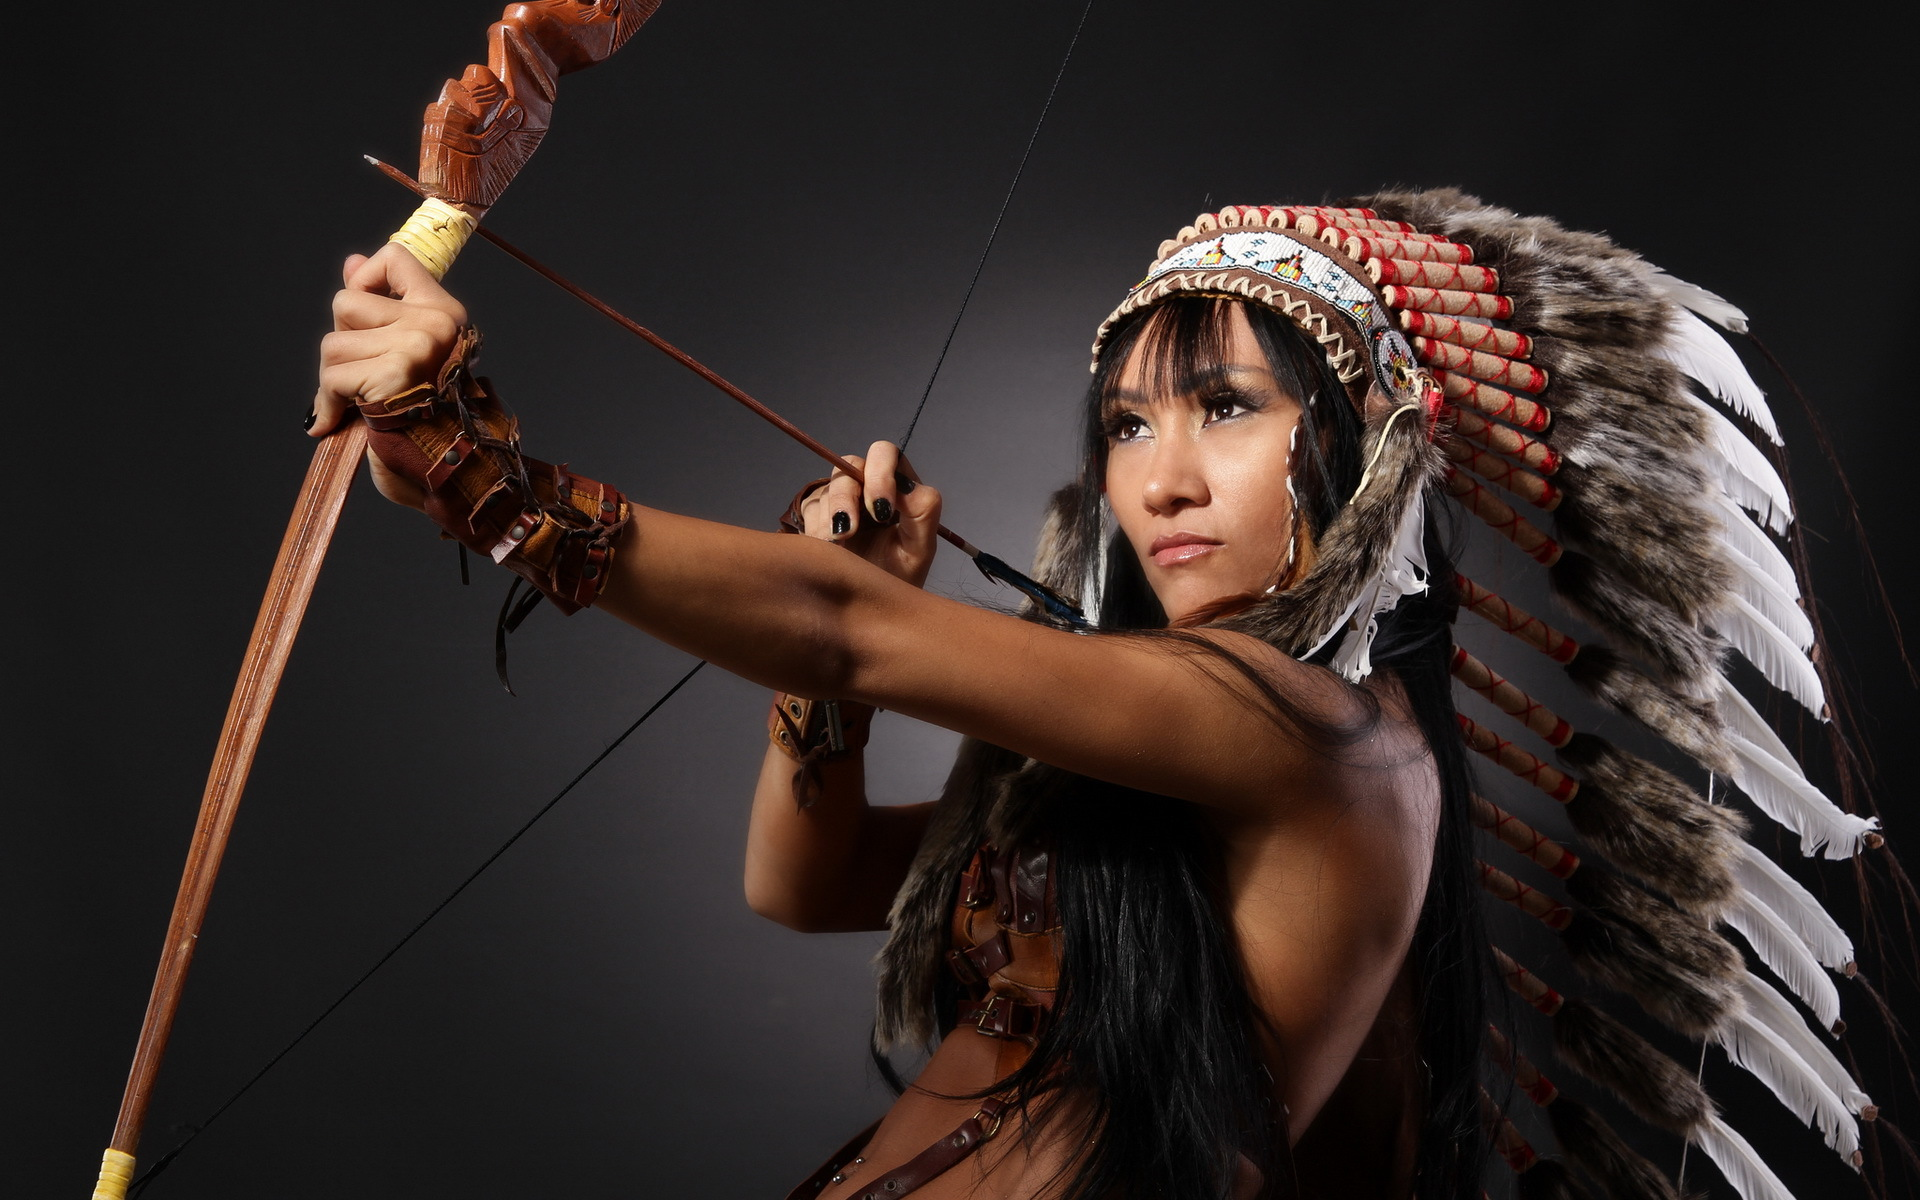 wallpaper wiki girl native american backgrounds free download